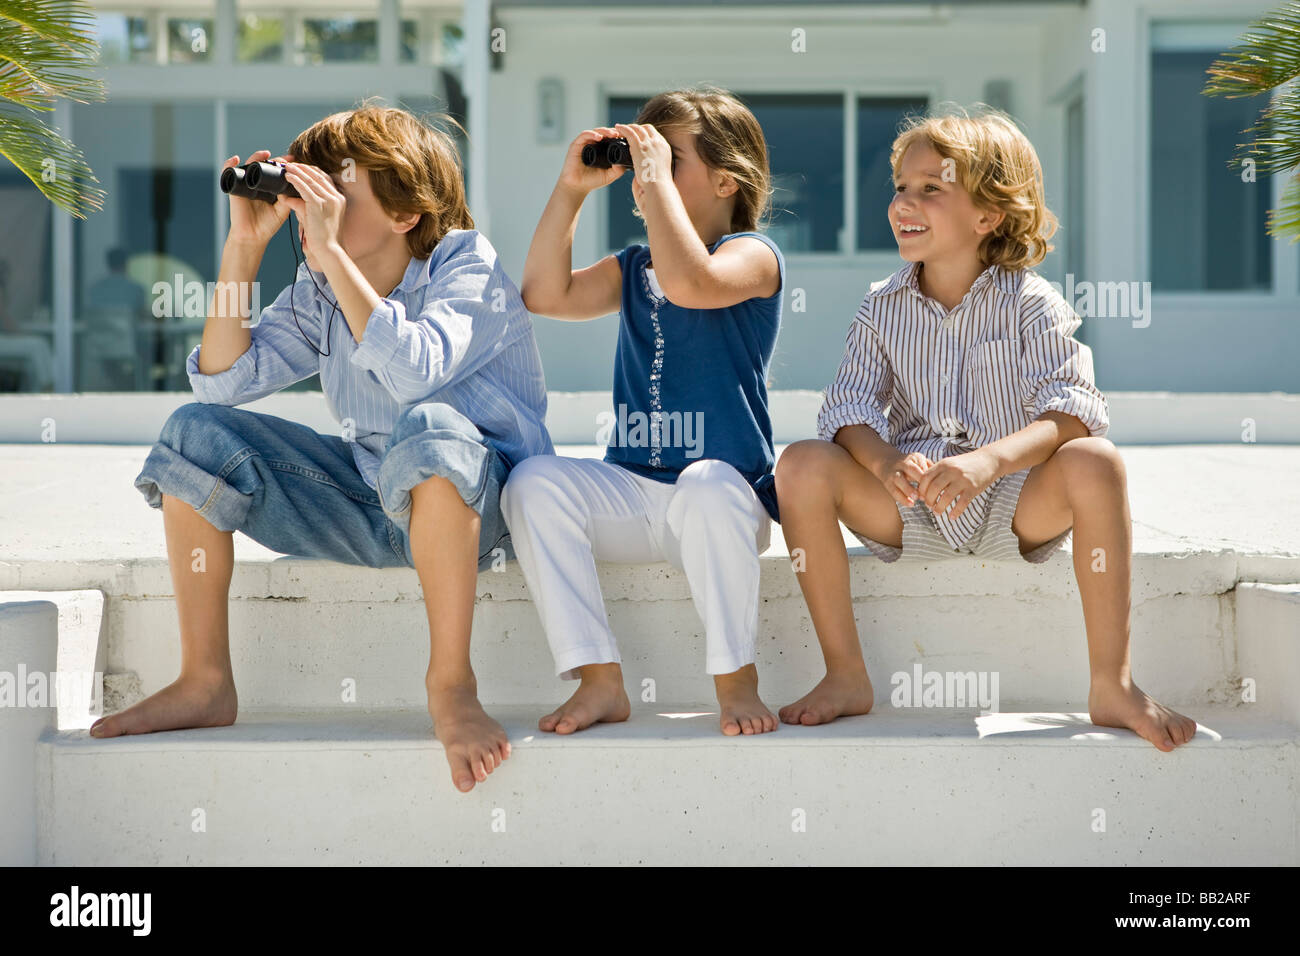 Two children looking through binoculars with their friend sitting beside them - Stock Image